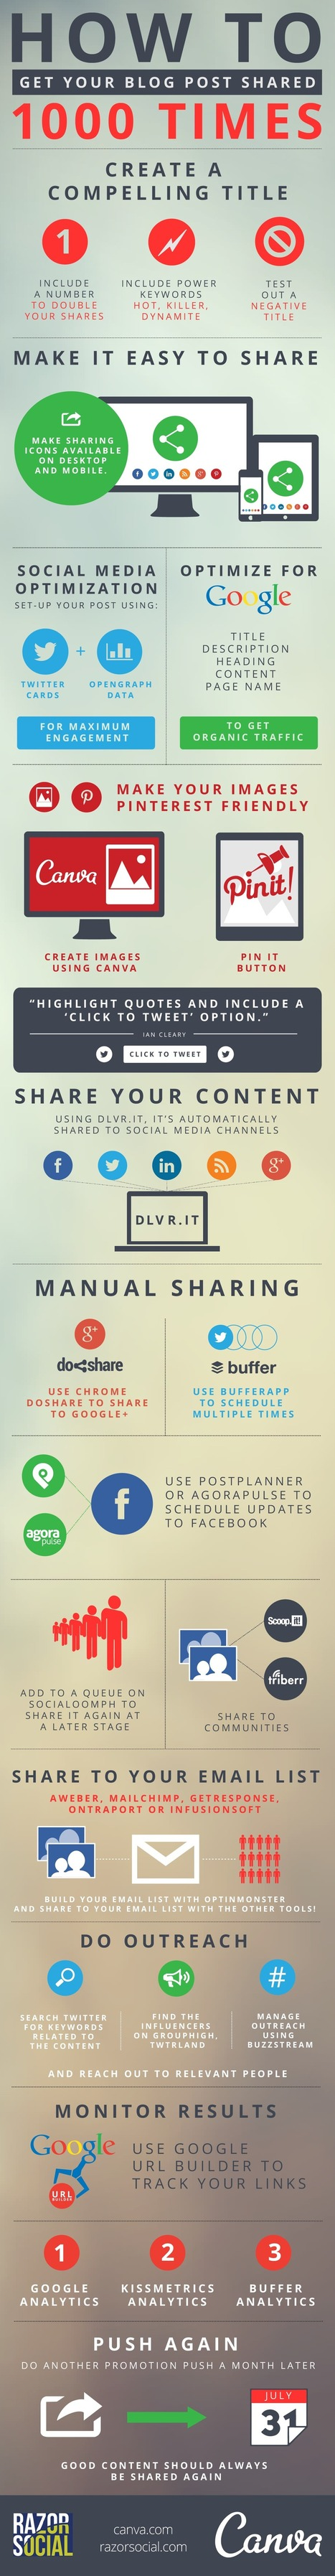 How to Promote Your Blog Content to Get 1,000 Social Media Shares | Infographic | JOIN SCOOP.IT AND FOLLOW ME ON SCOOP.IT | Scoop.it